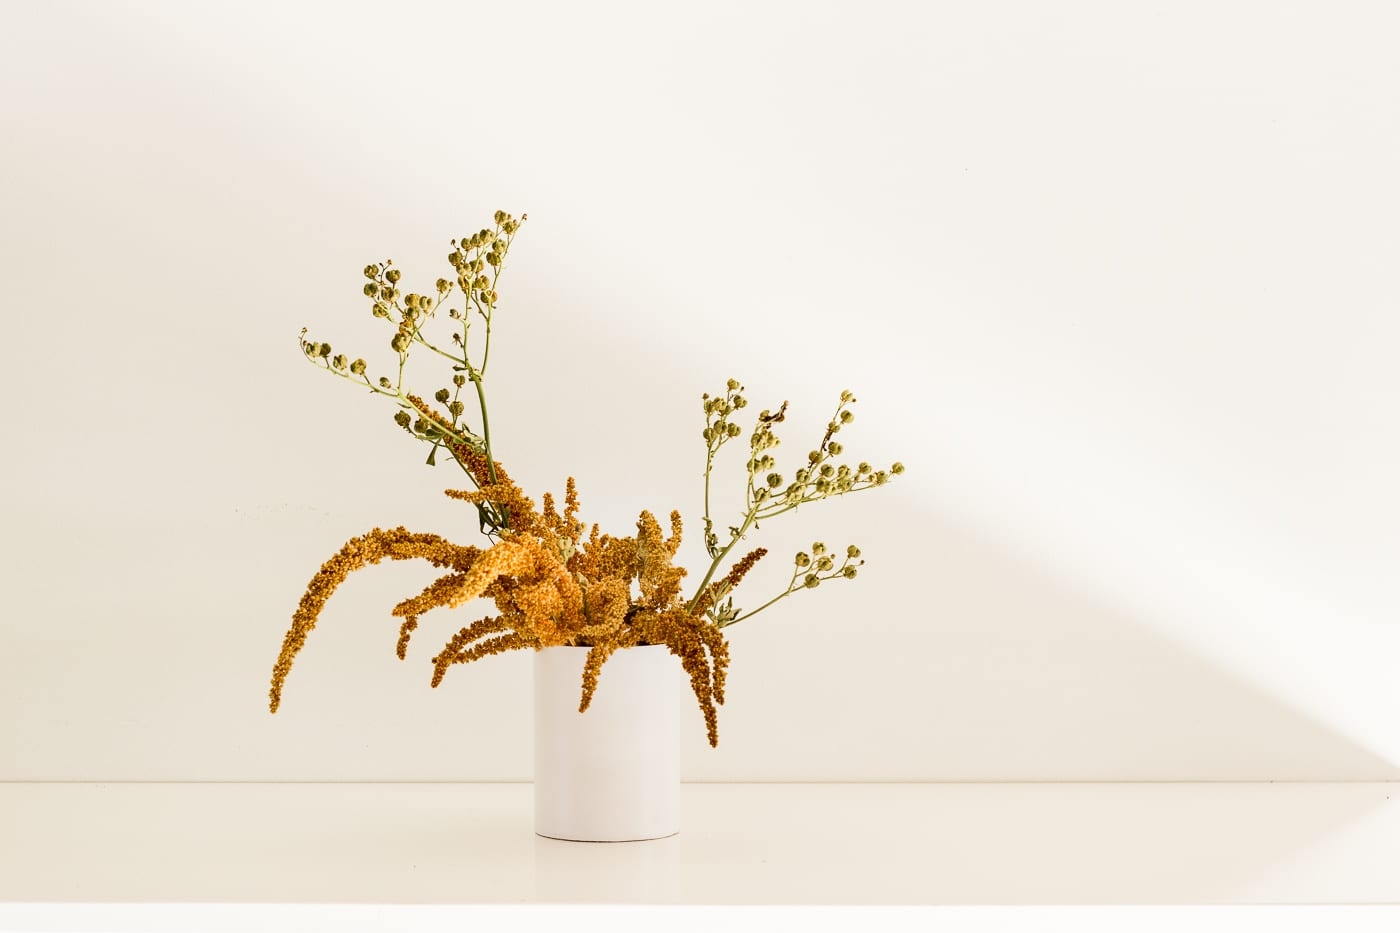 Natural style dried mini arrangement in vase from On My Hand Florals and Styling, Tauranga, Bay of Plenty.